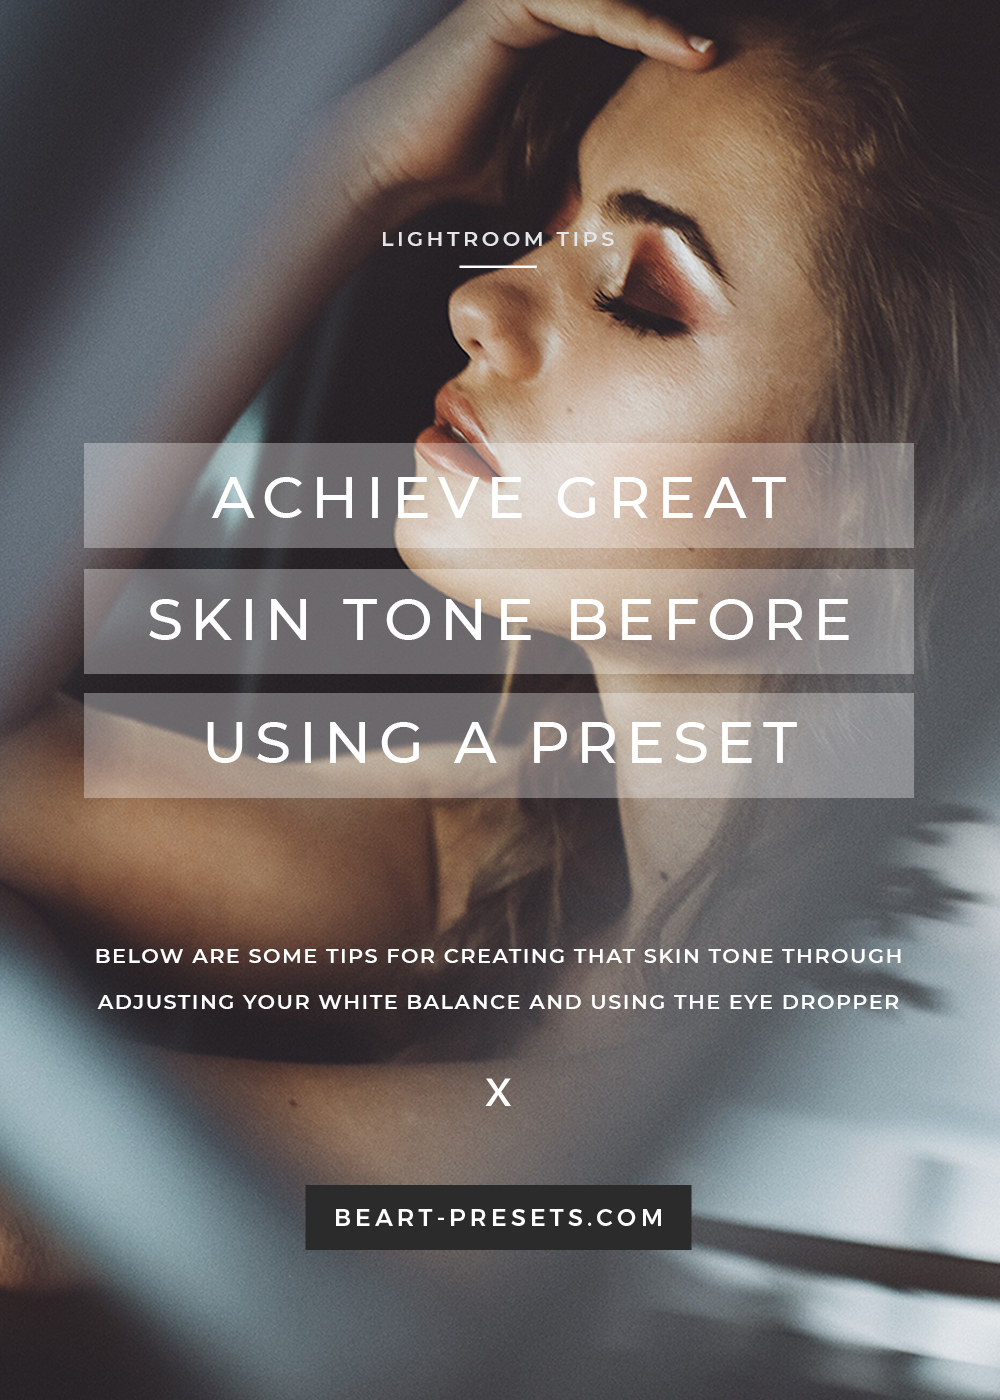 Achieve-great-skin-tone-before-using-a-preset